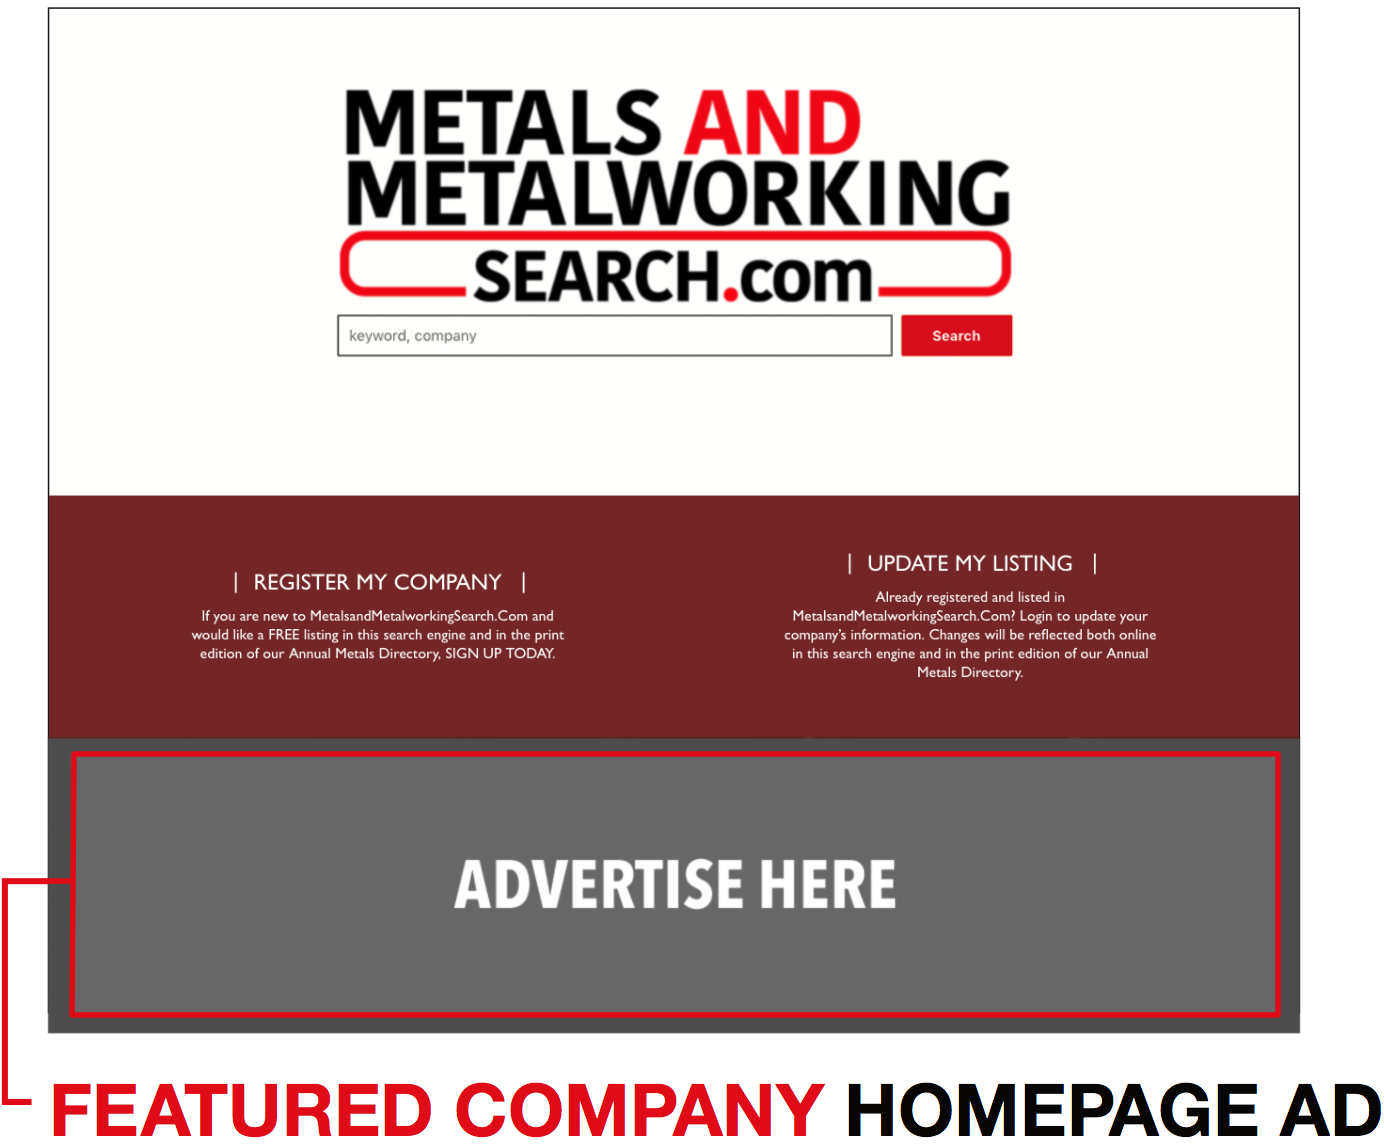 Featured Company Hompage Ads